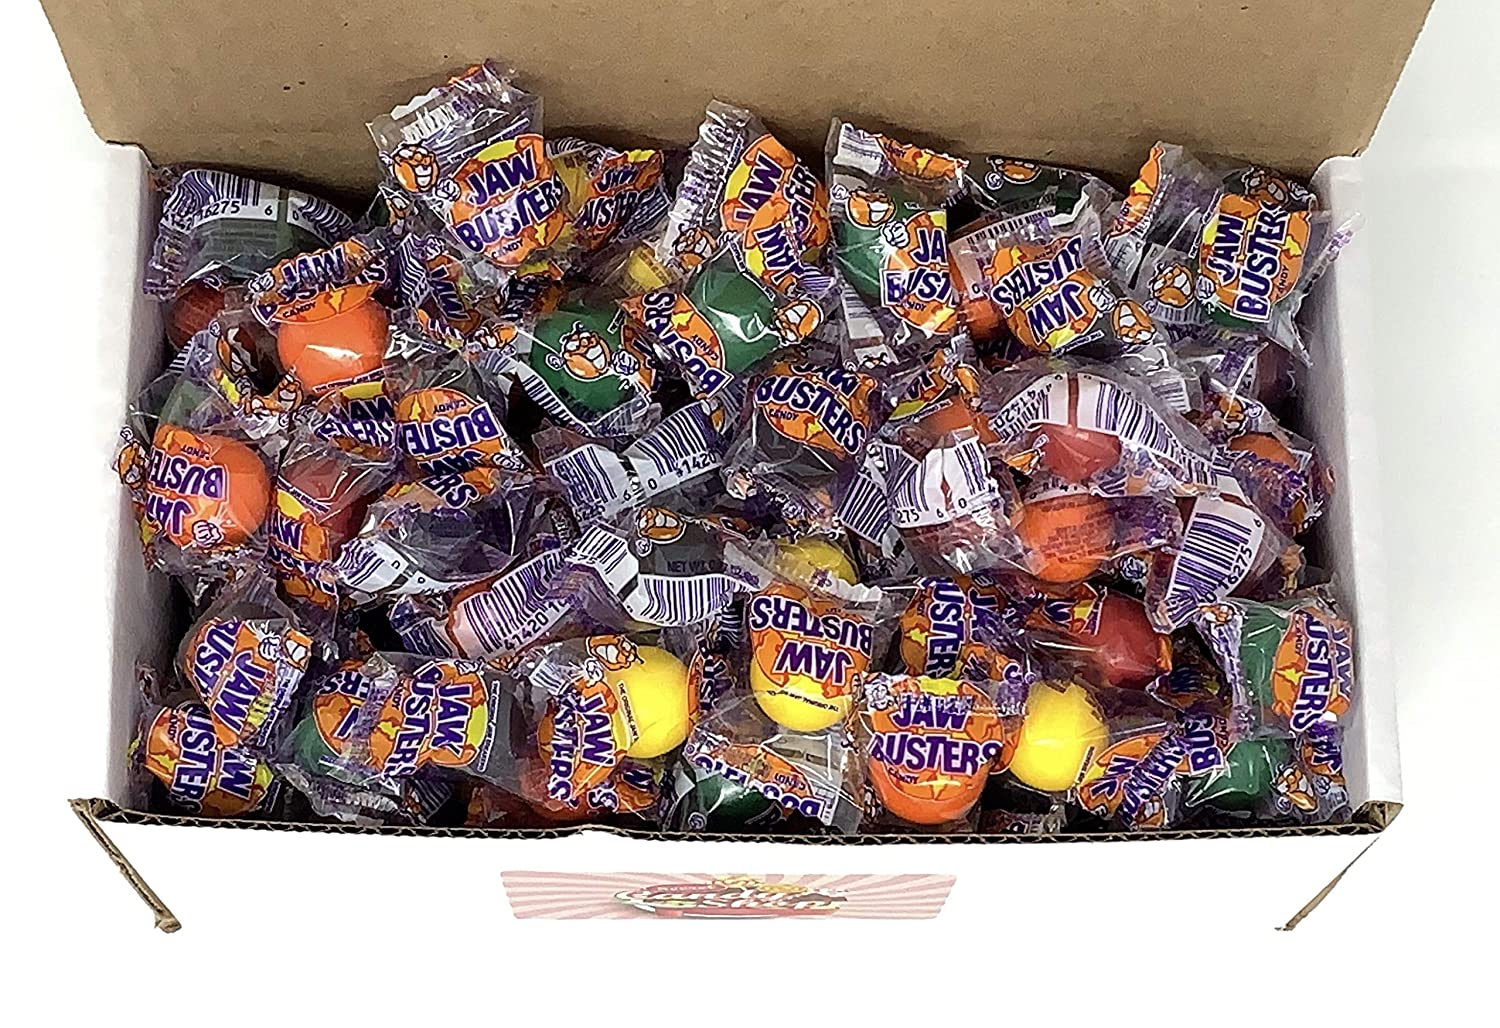 Jawbusters Candy Hard in Box Inventory cleanup selling sale Cheap SALE Start 5LB Individually Wrap Bulk